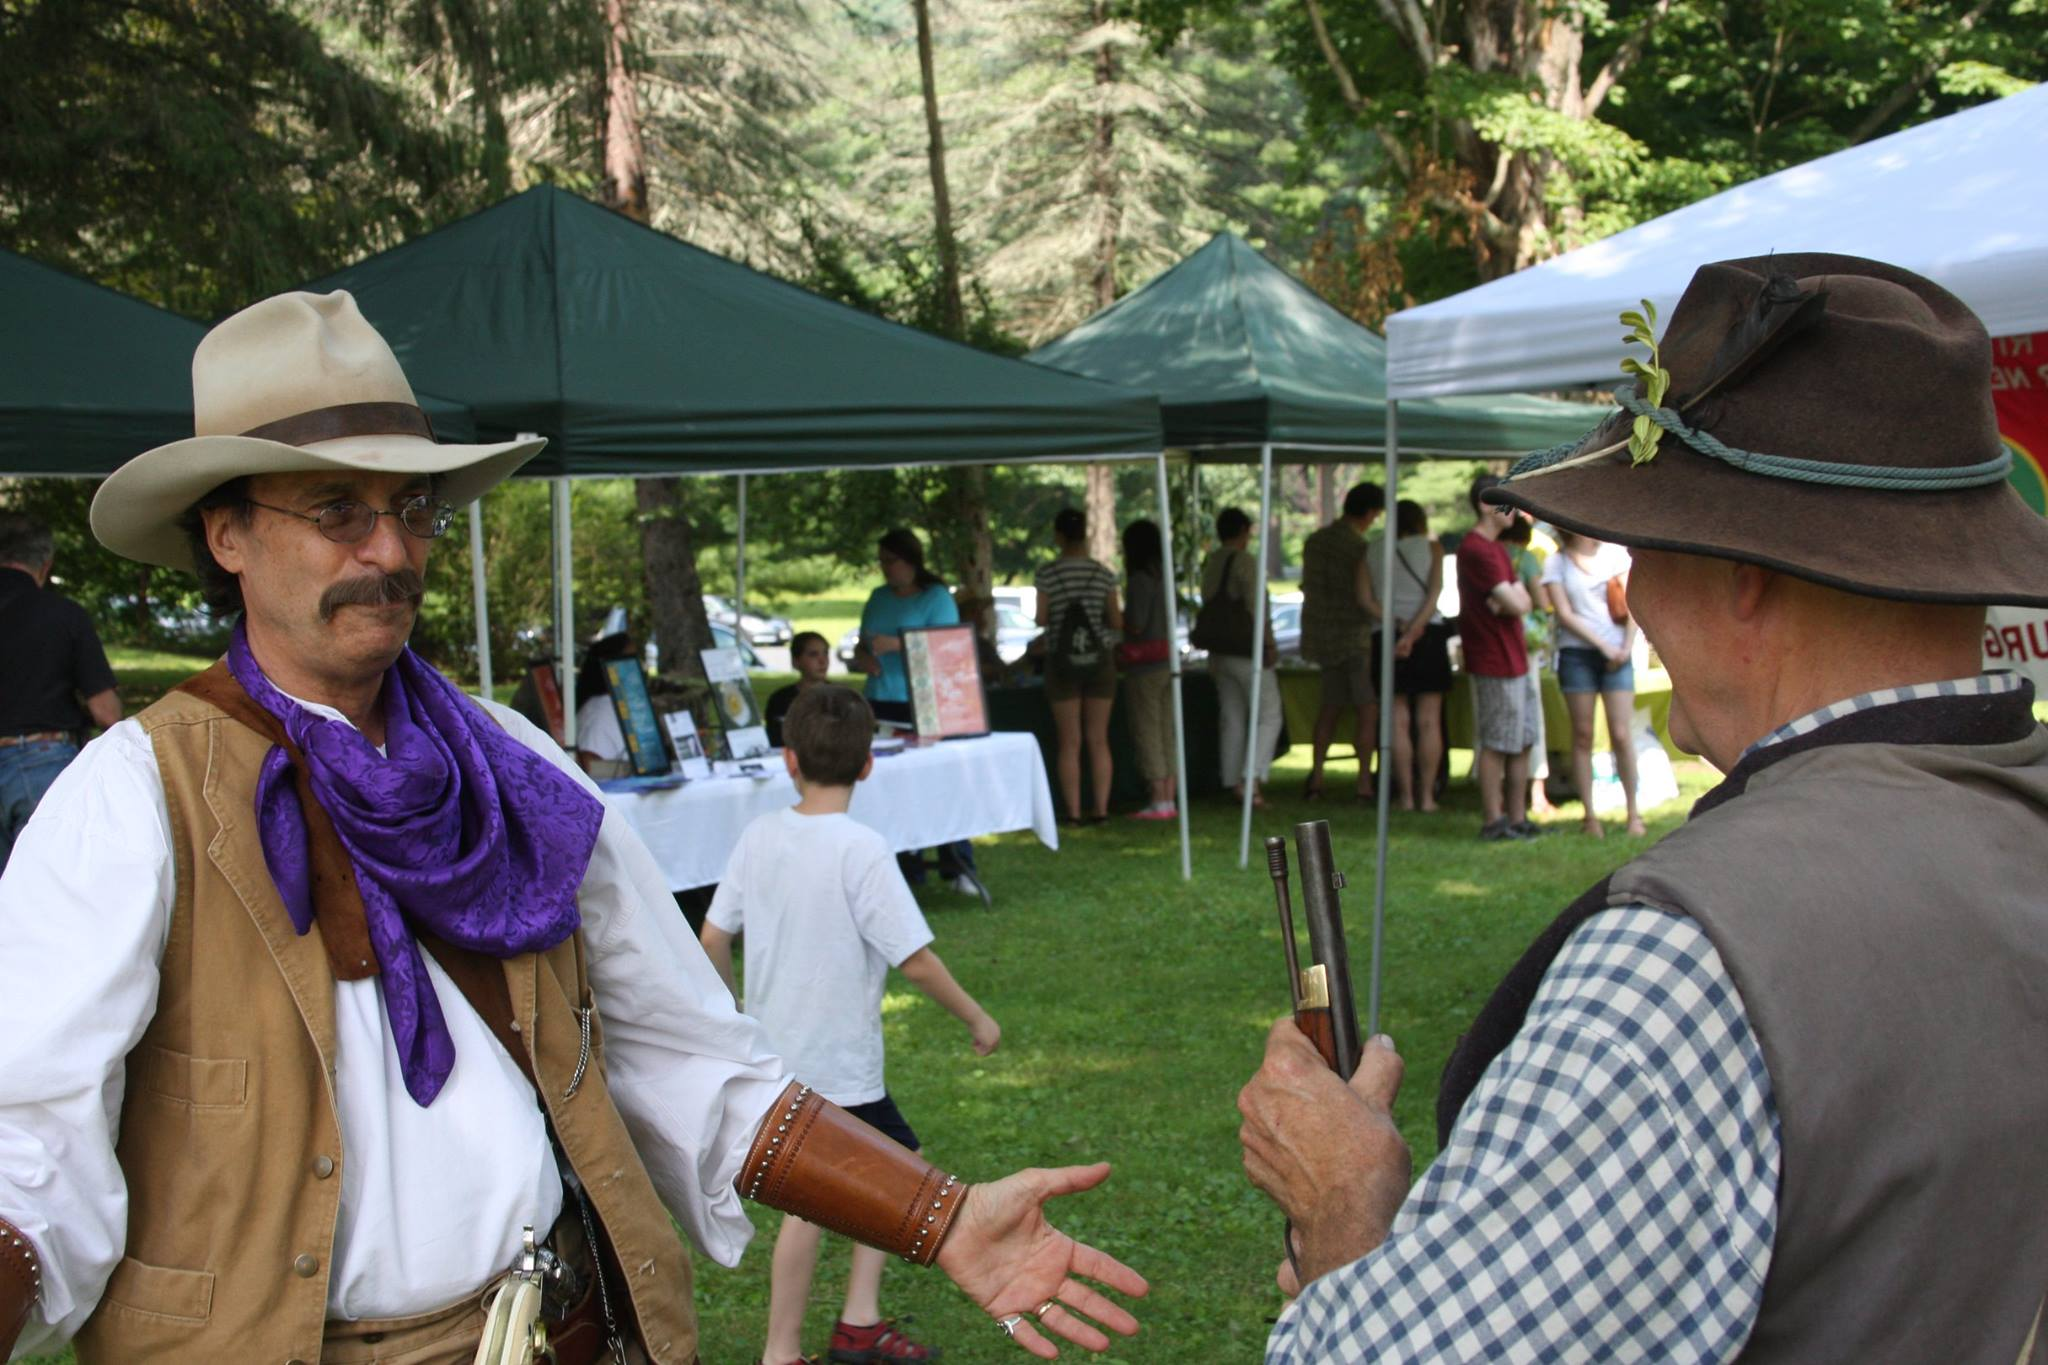 The Cowboy Dentist meets a Civil War Soldier at the Zane Grey Festival